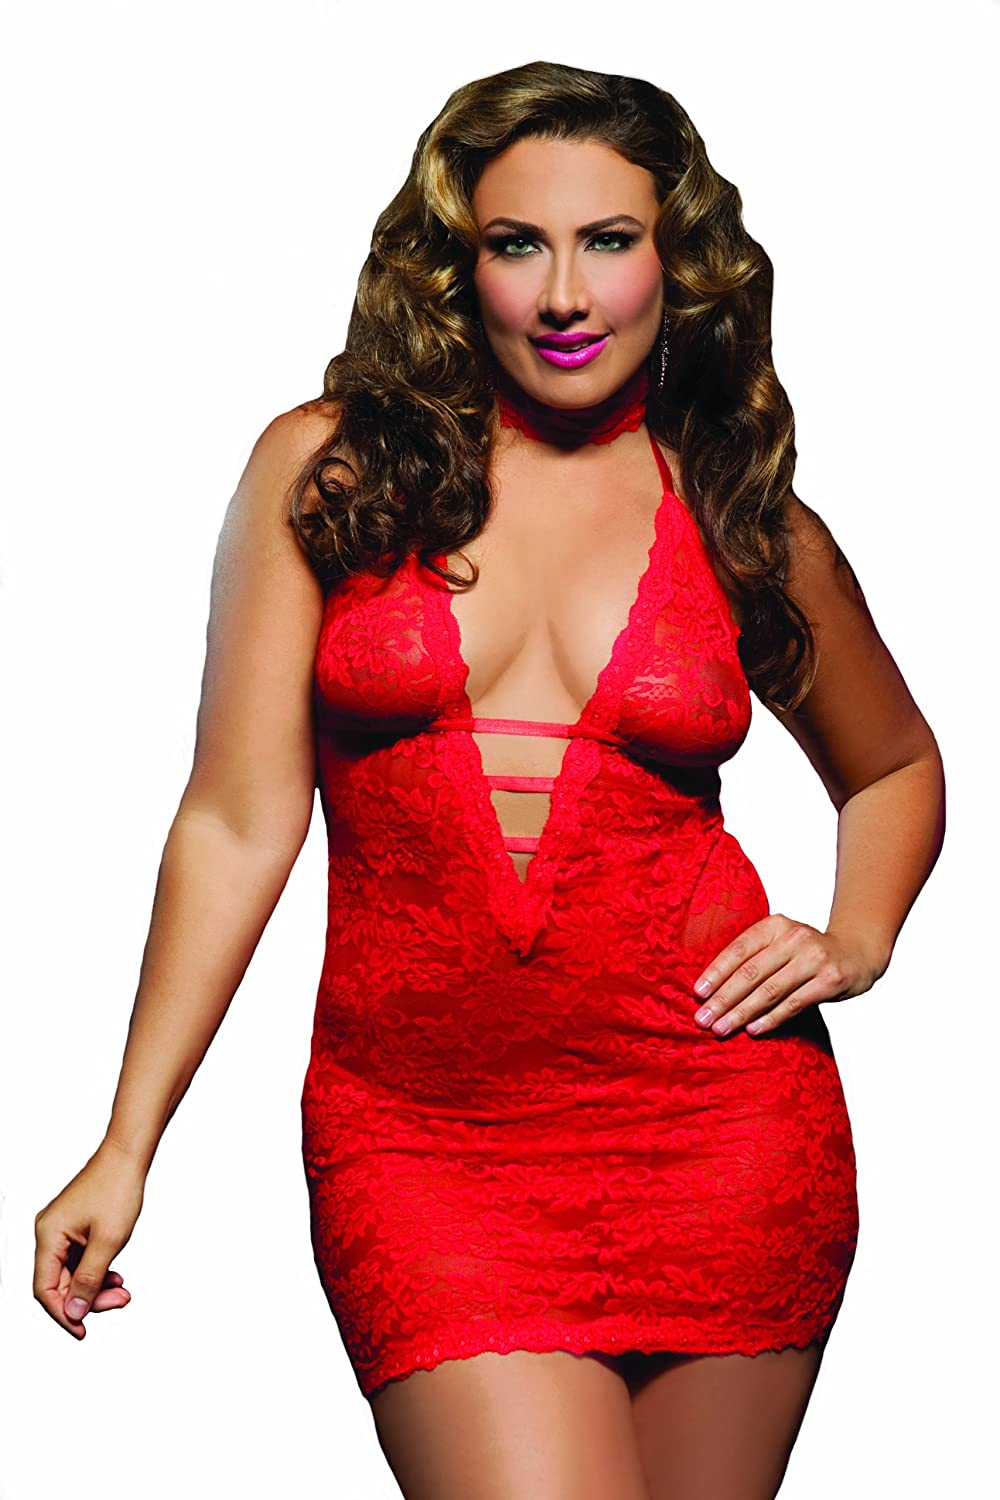 SEVEN 'TIL MIDNIGHT Women's Plus Size Affair Chemise Black Queen Size Seven Til Midnight 9217X